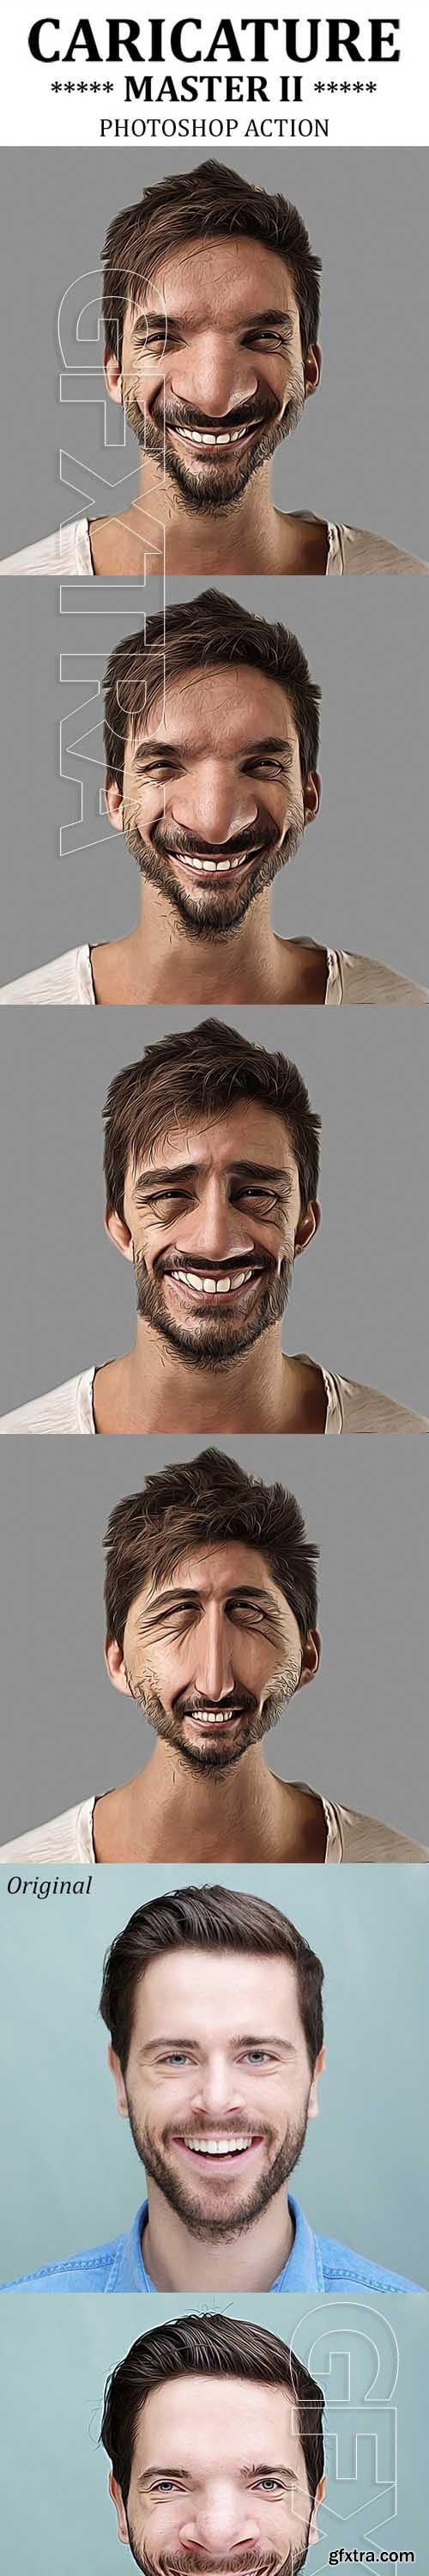 GraphicRiver - Caricature Master II Photoshop Action 19852002